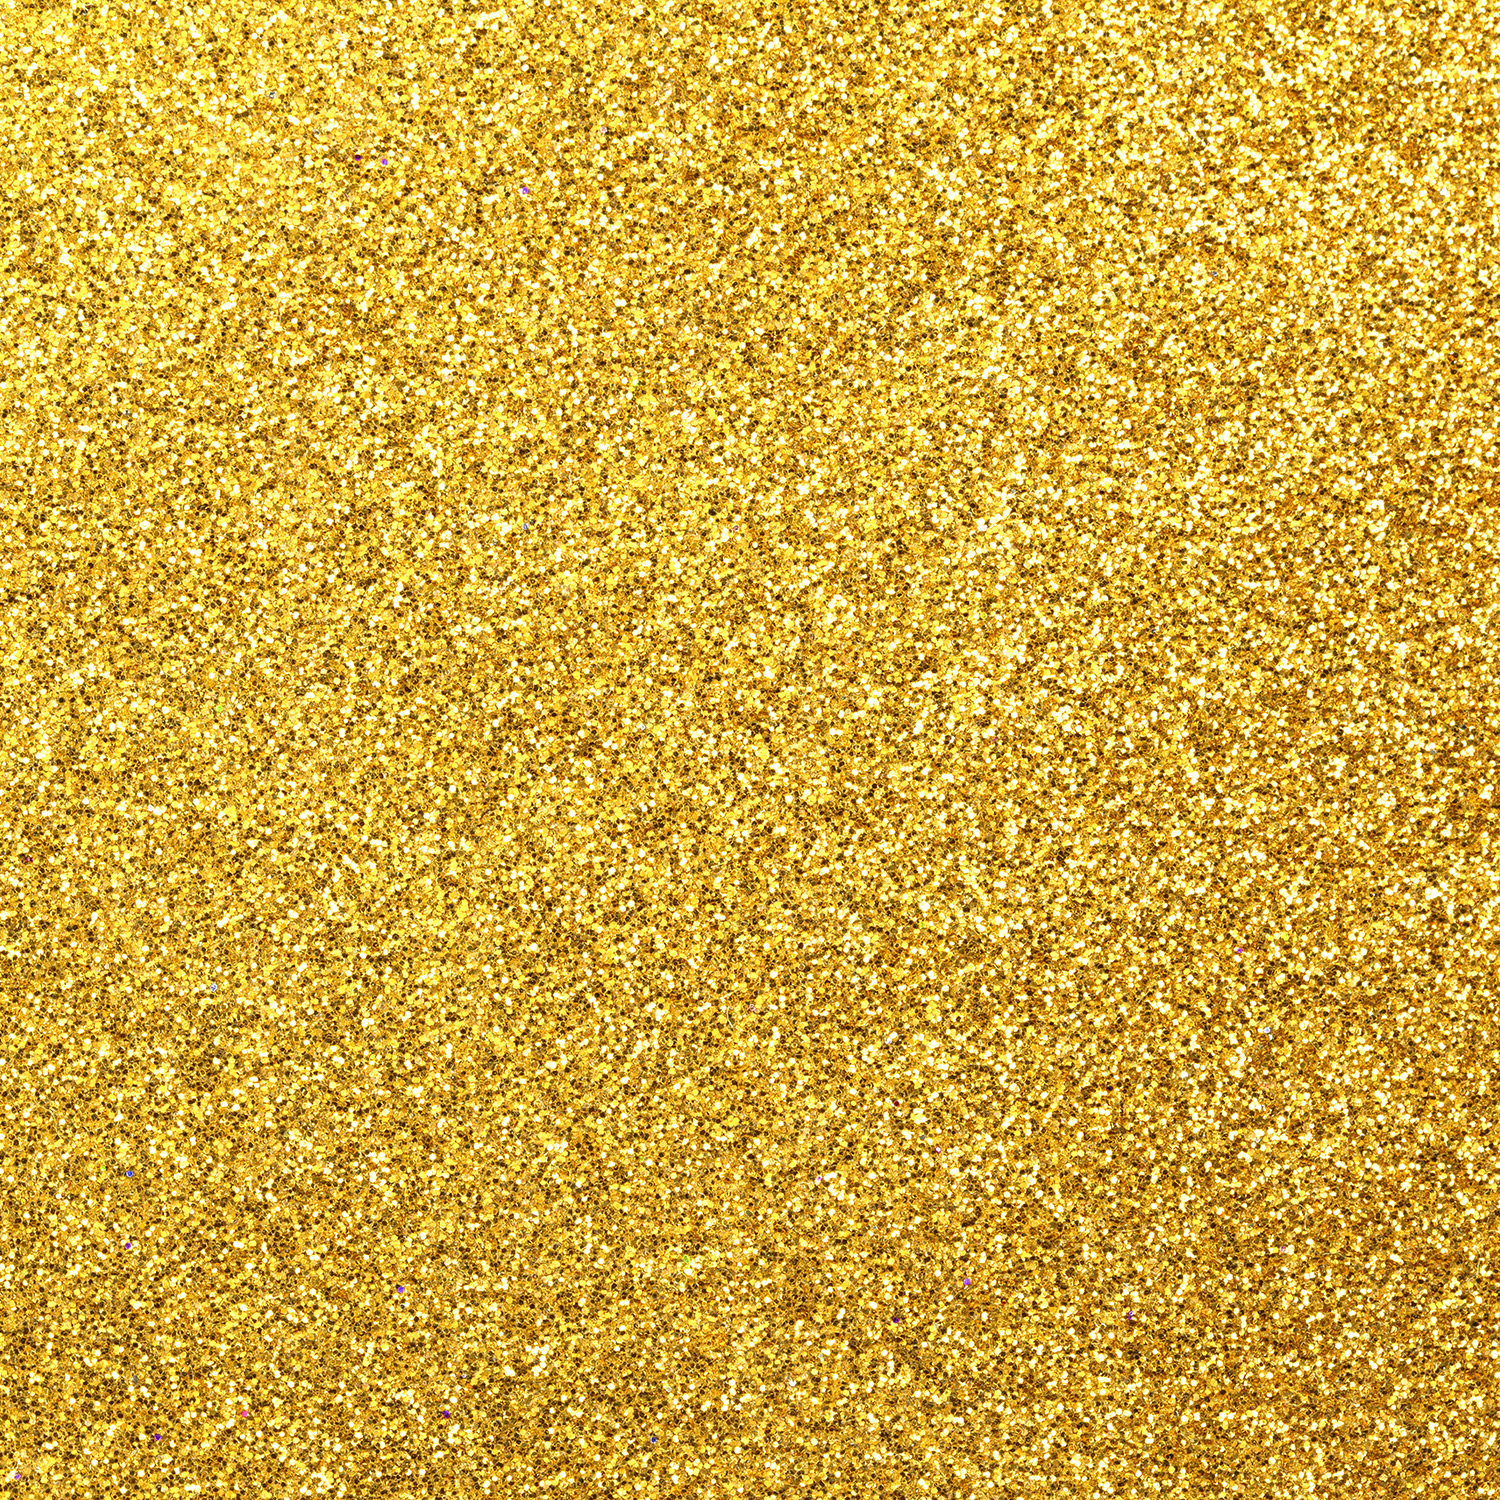 Gold glitter wallpaper wallpapersafari for Gold wallpaper for walls